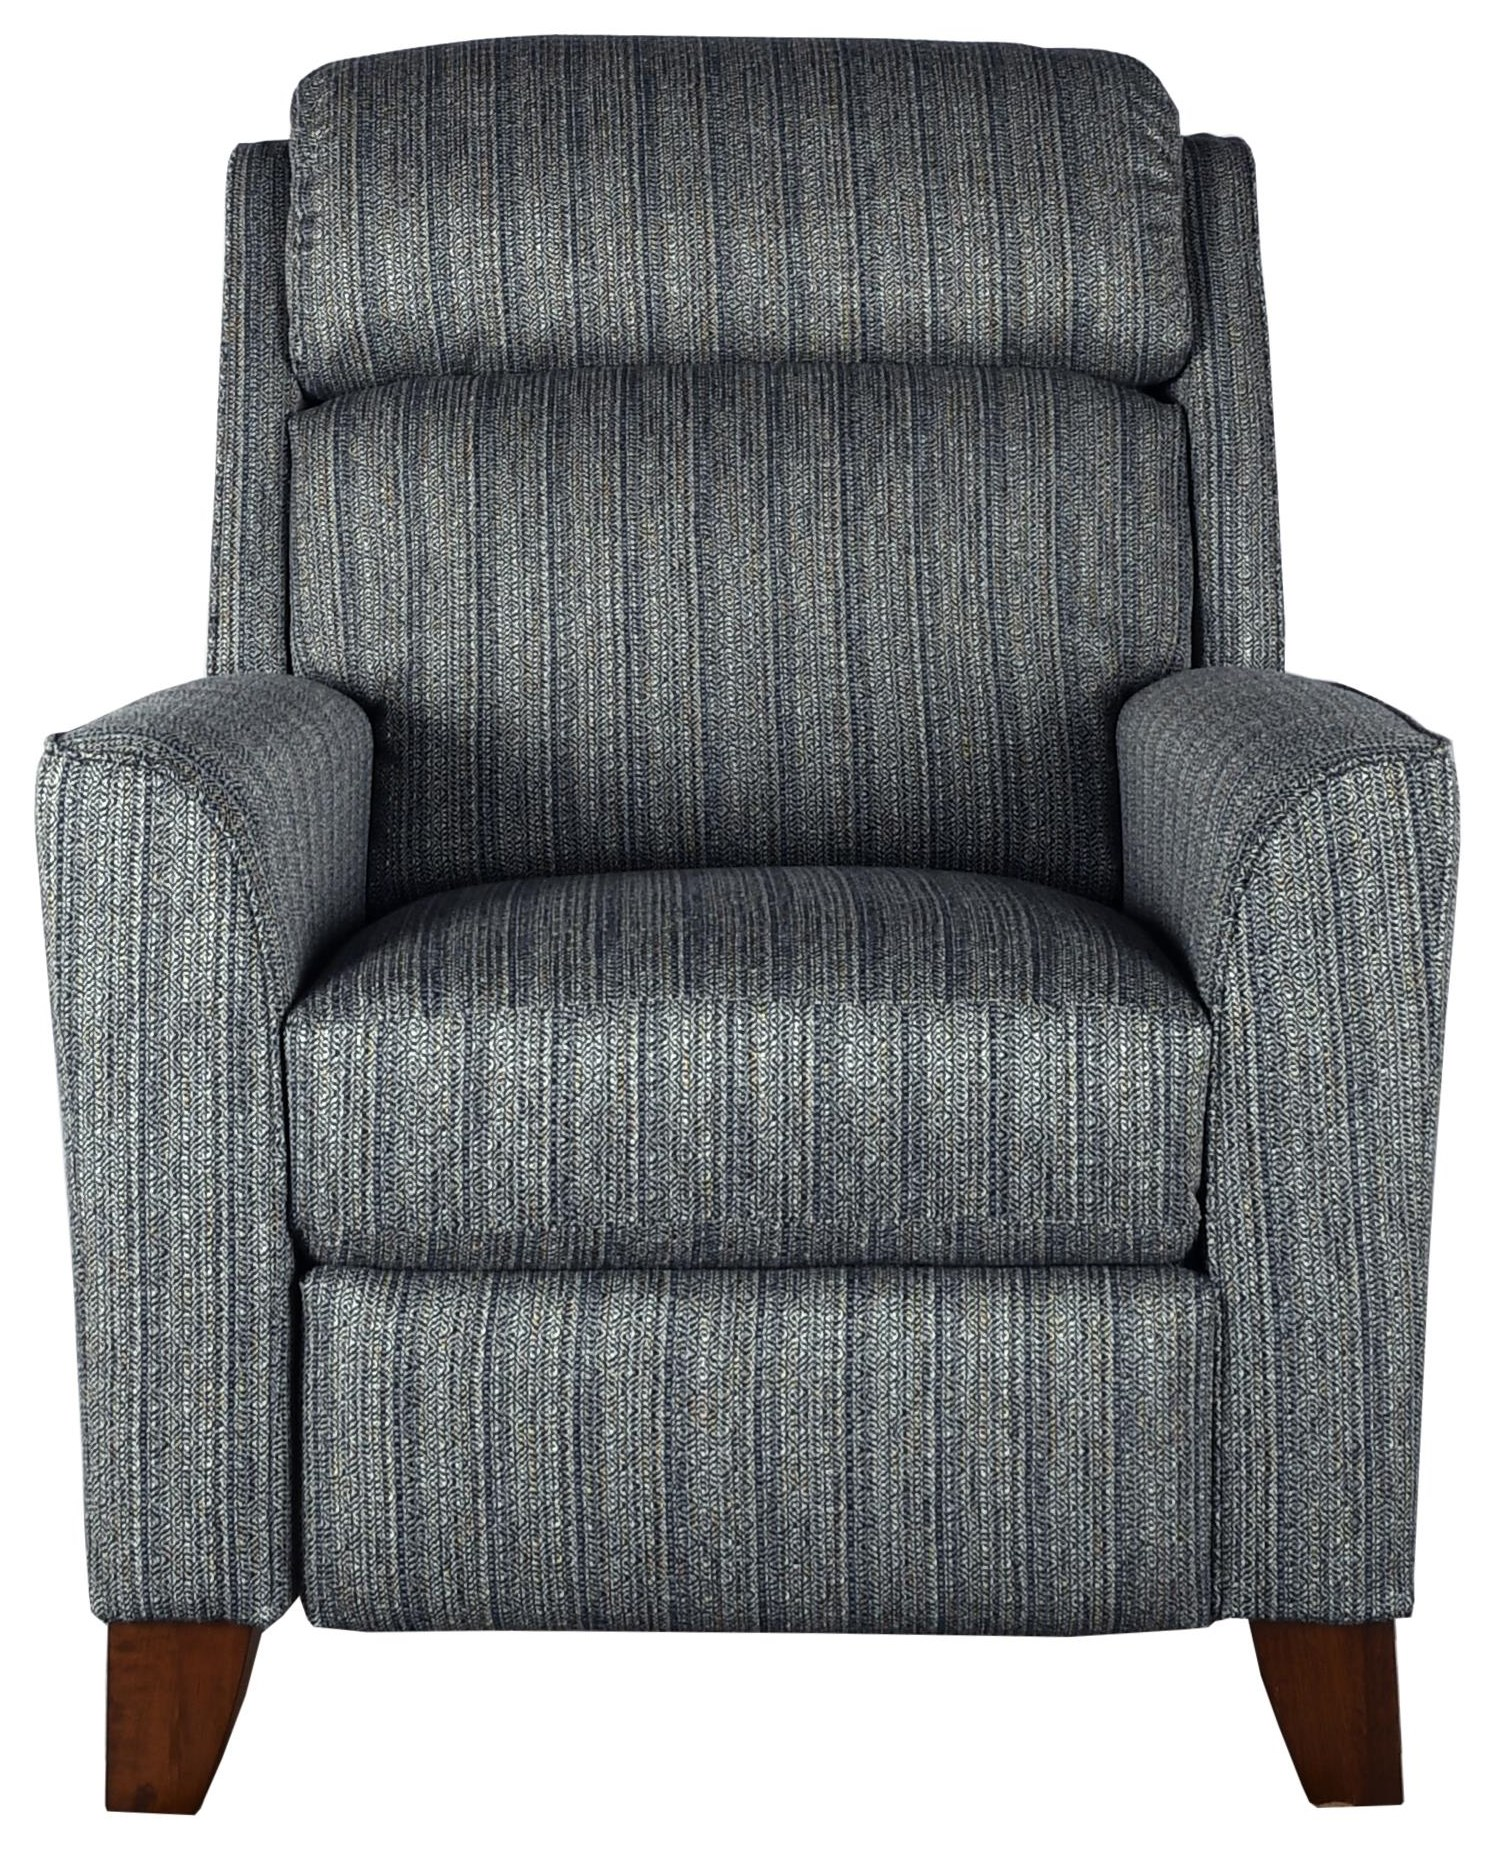 Rheeves Recliner by La-Z-Boy at Bennett's Furniture and Mattresses